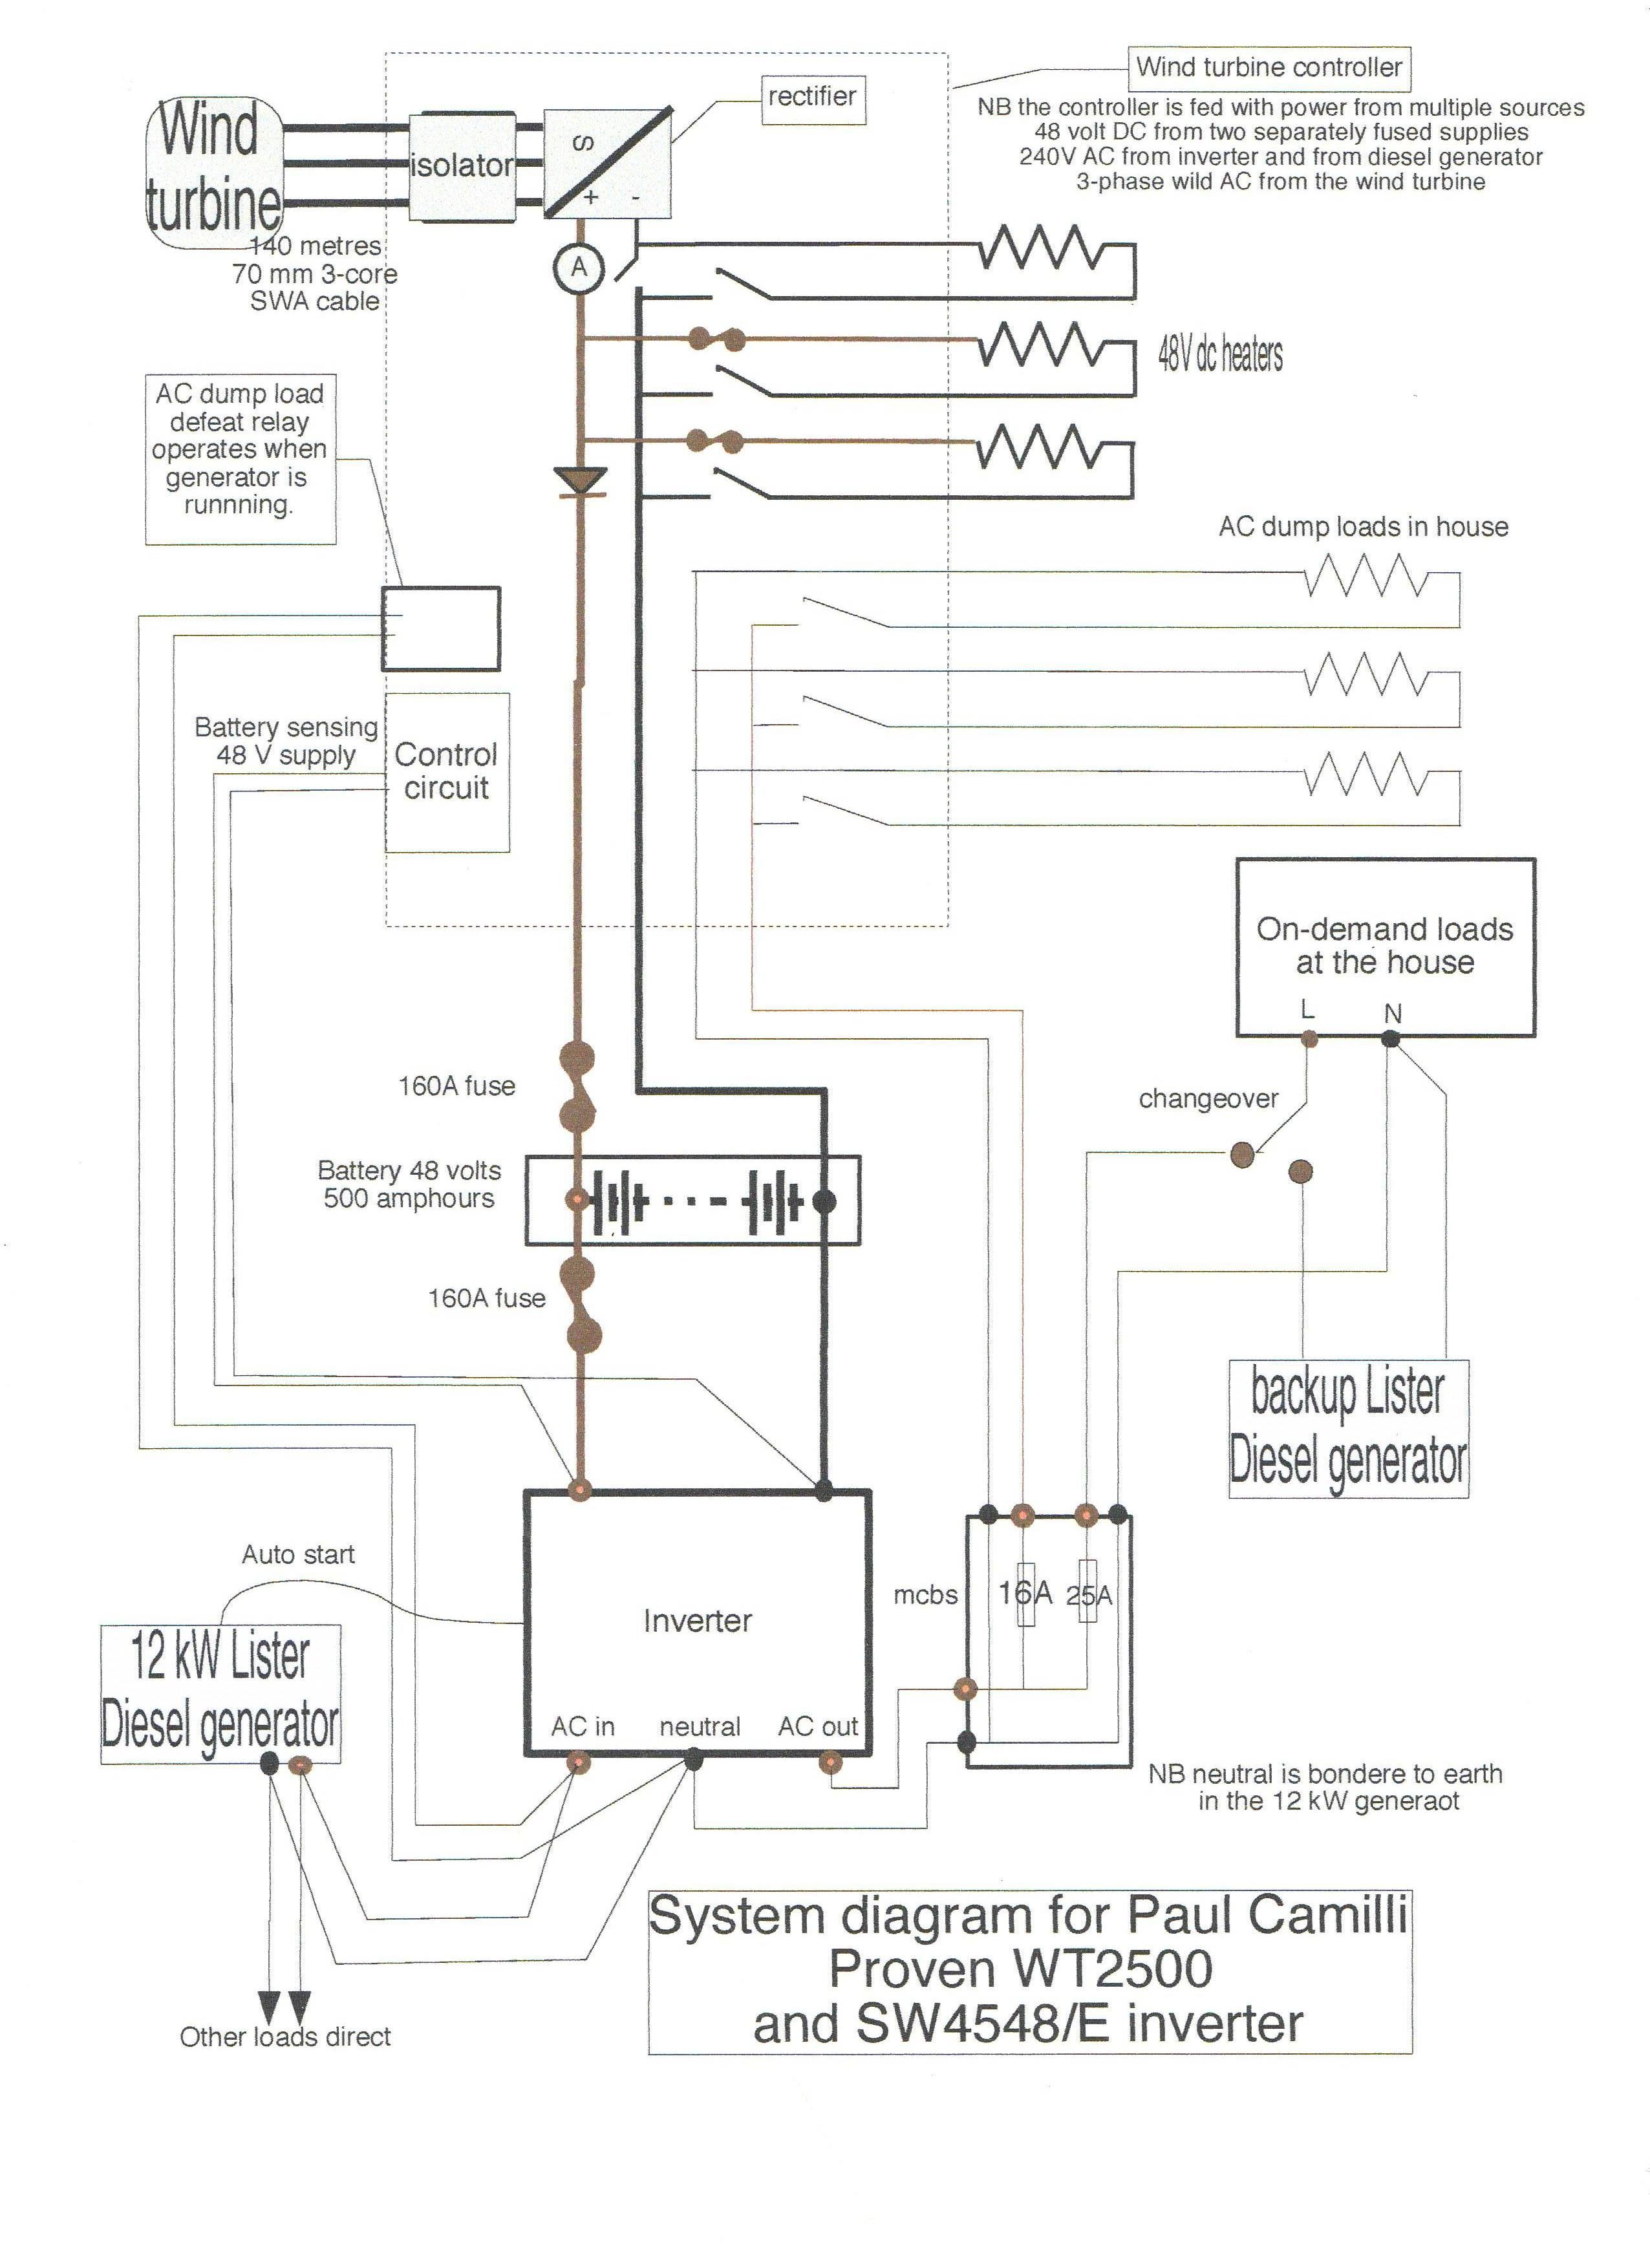 solar controller wiring diagram panel charge anonymerfo directv swm odu diy wind turbine diagrams library windmill power home electrical engineering